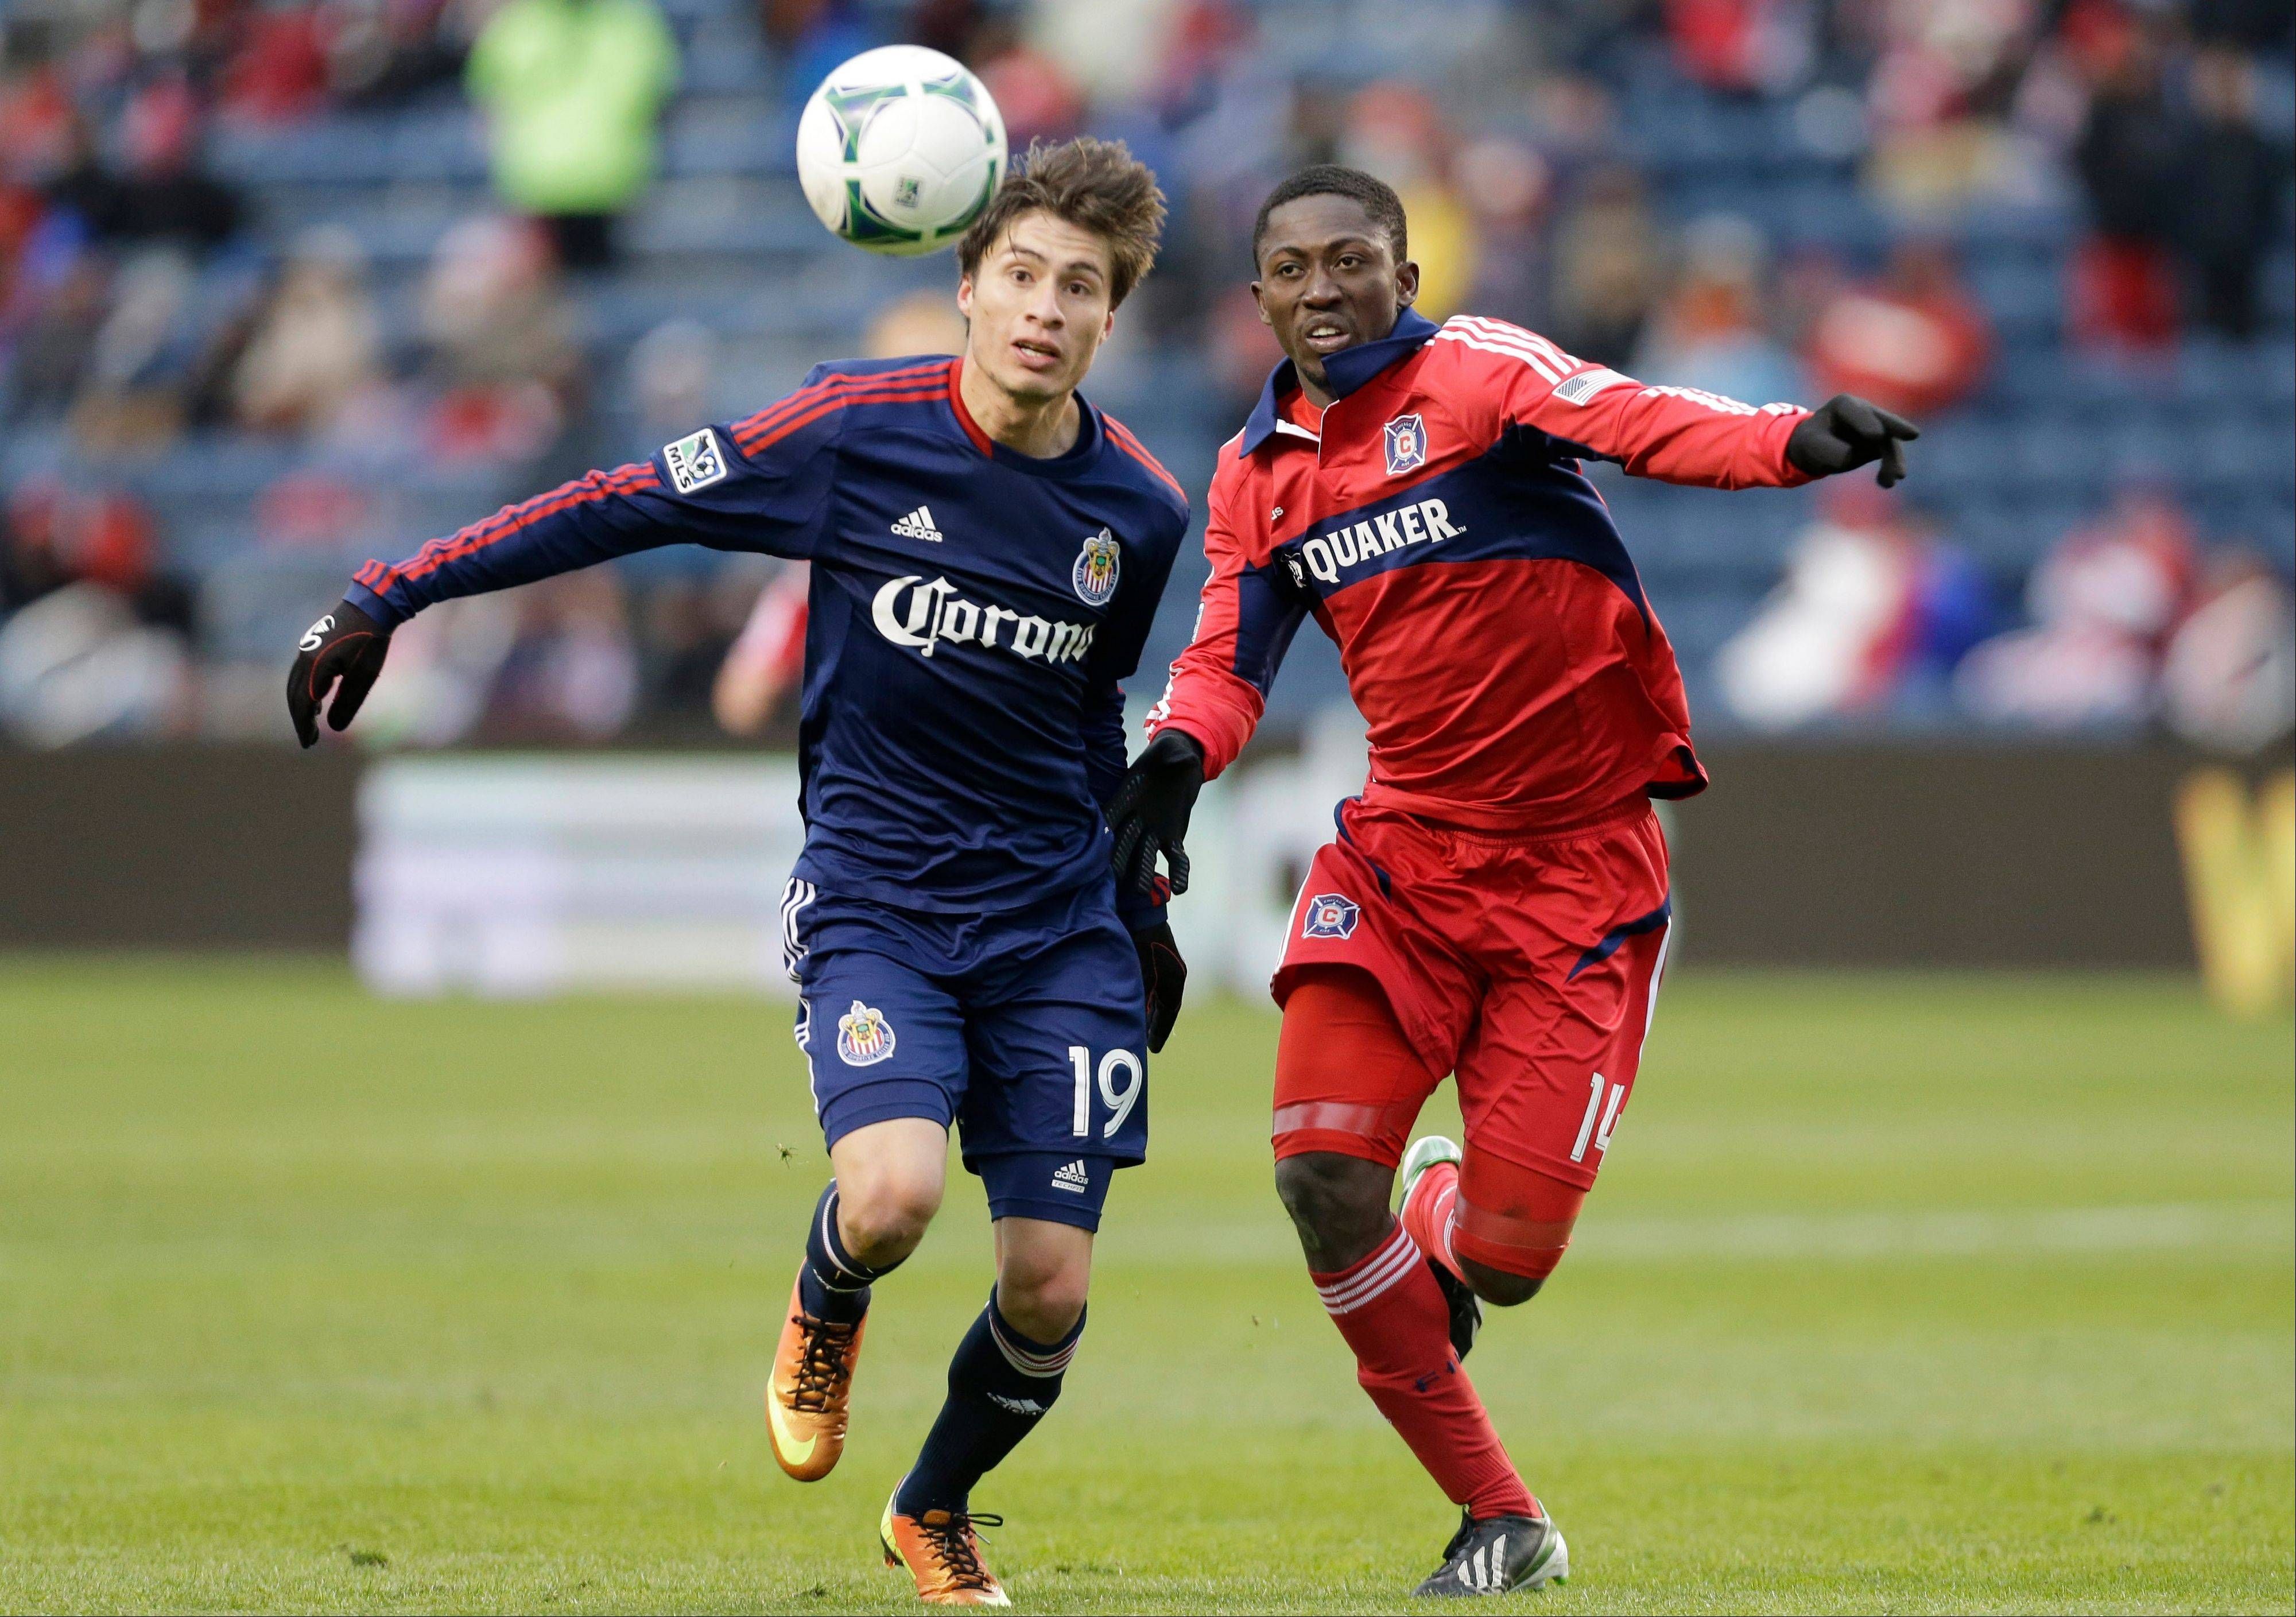 Chicago Fire forward Patrick Nyarko, right, is unlikely to play this Sunday against New York due to a hamstring injury.